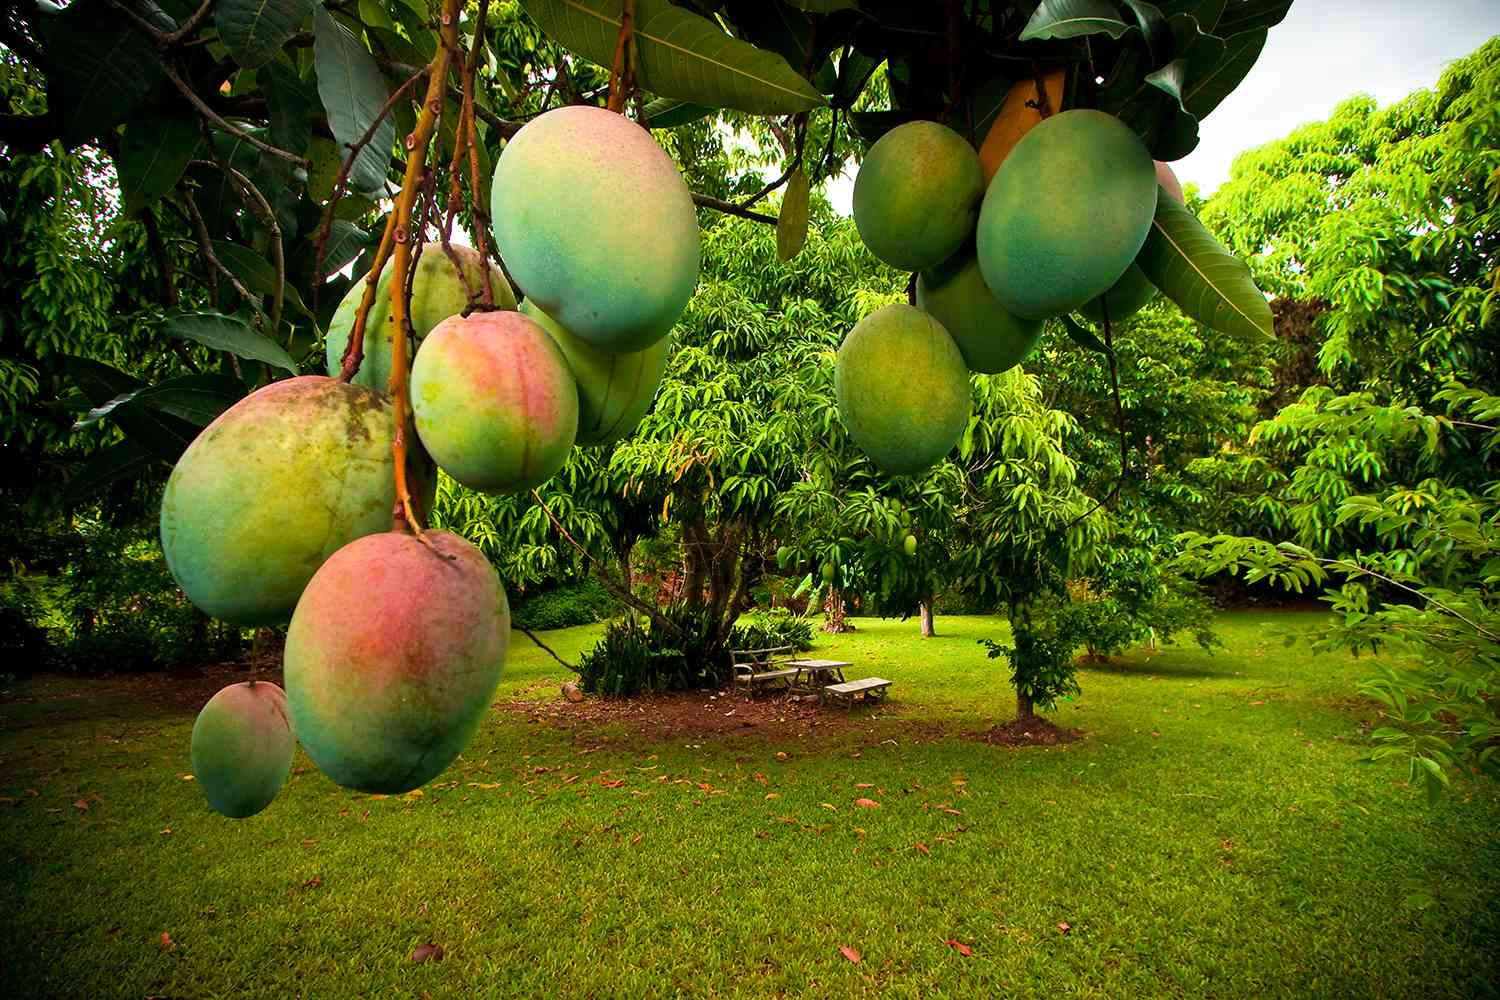 Bunch of ripe and green Julie mangoes hanging on tree